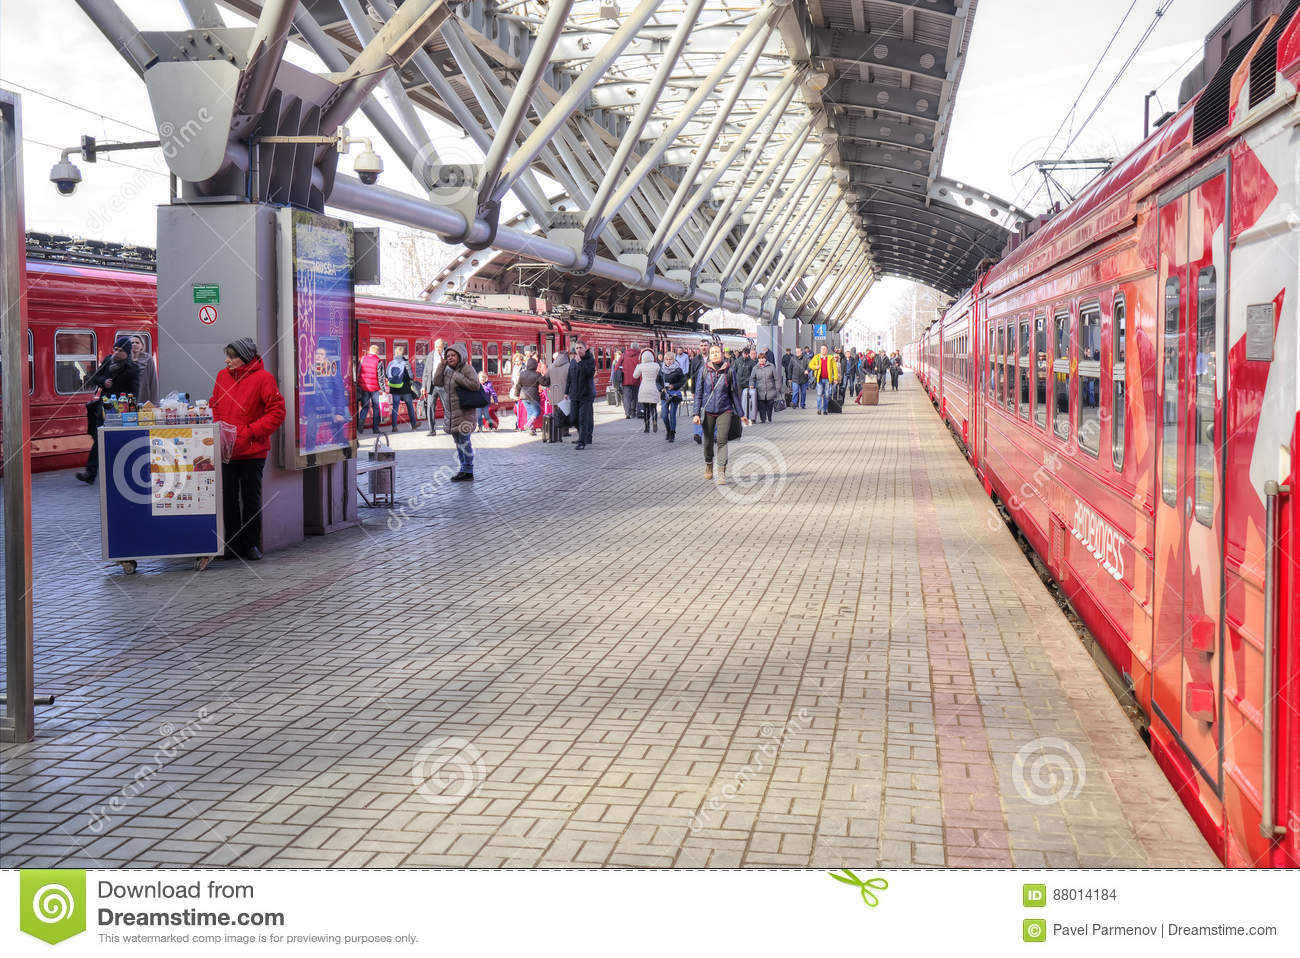 About how to get to Domodedovo by aeroexpress